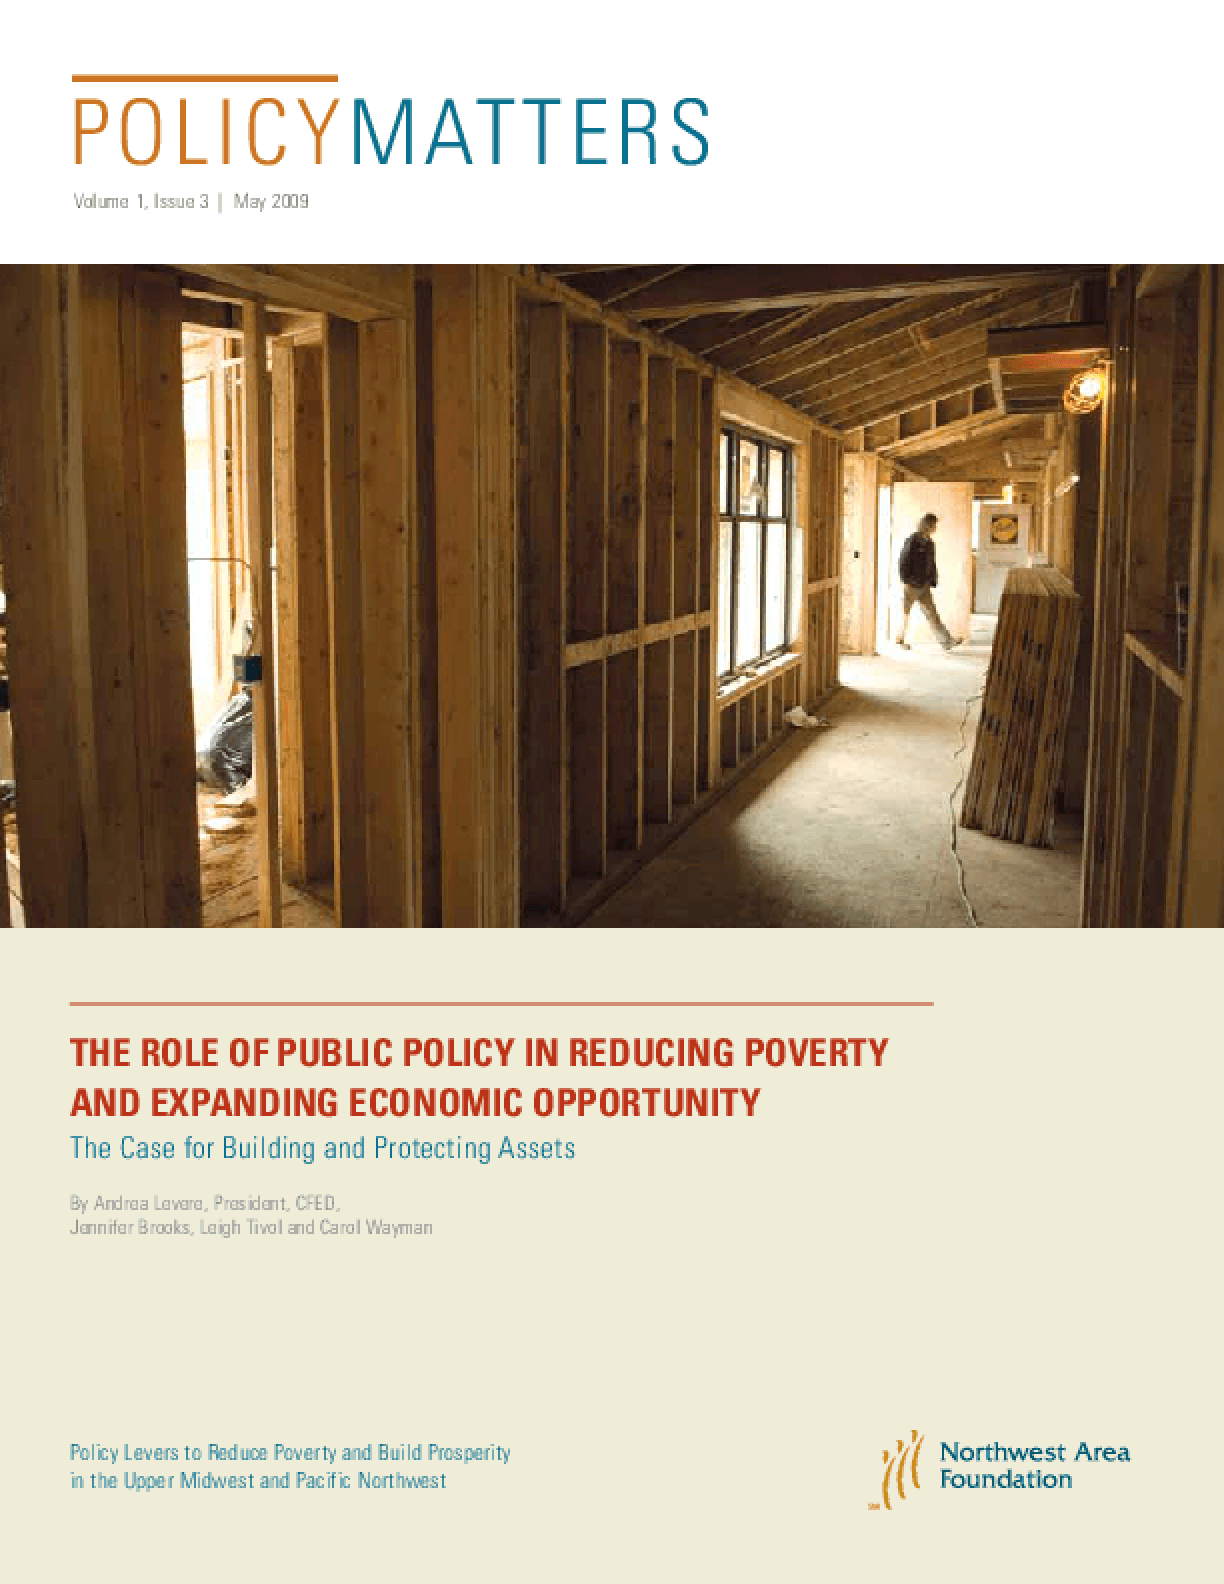 PolicyMatters: The Role of Public Policy in Reducing Poverty and Expanding Economic Opportunity